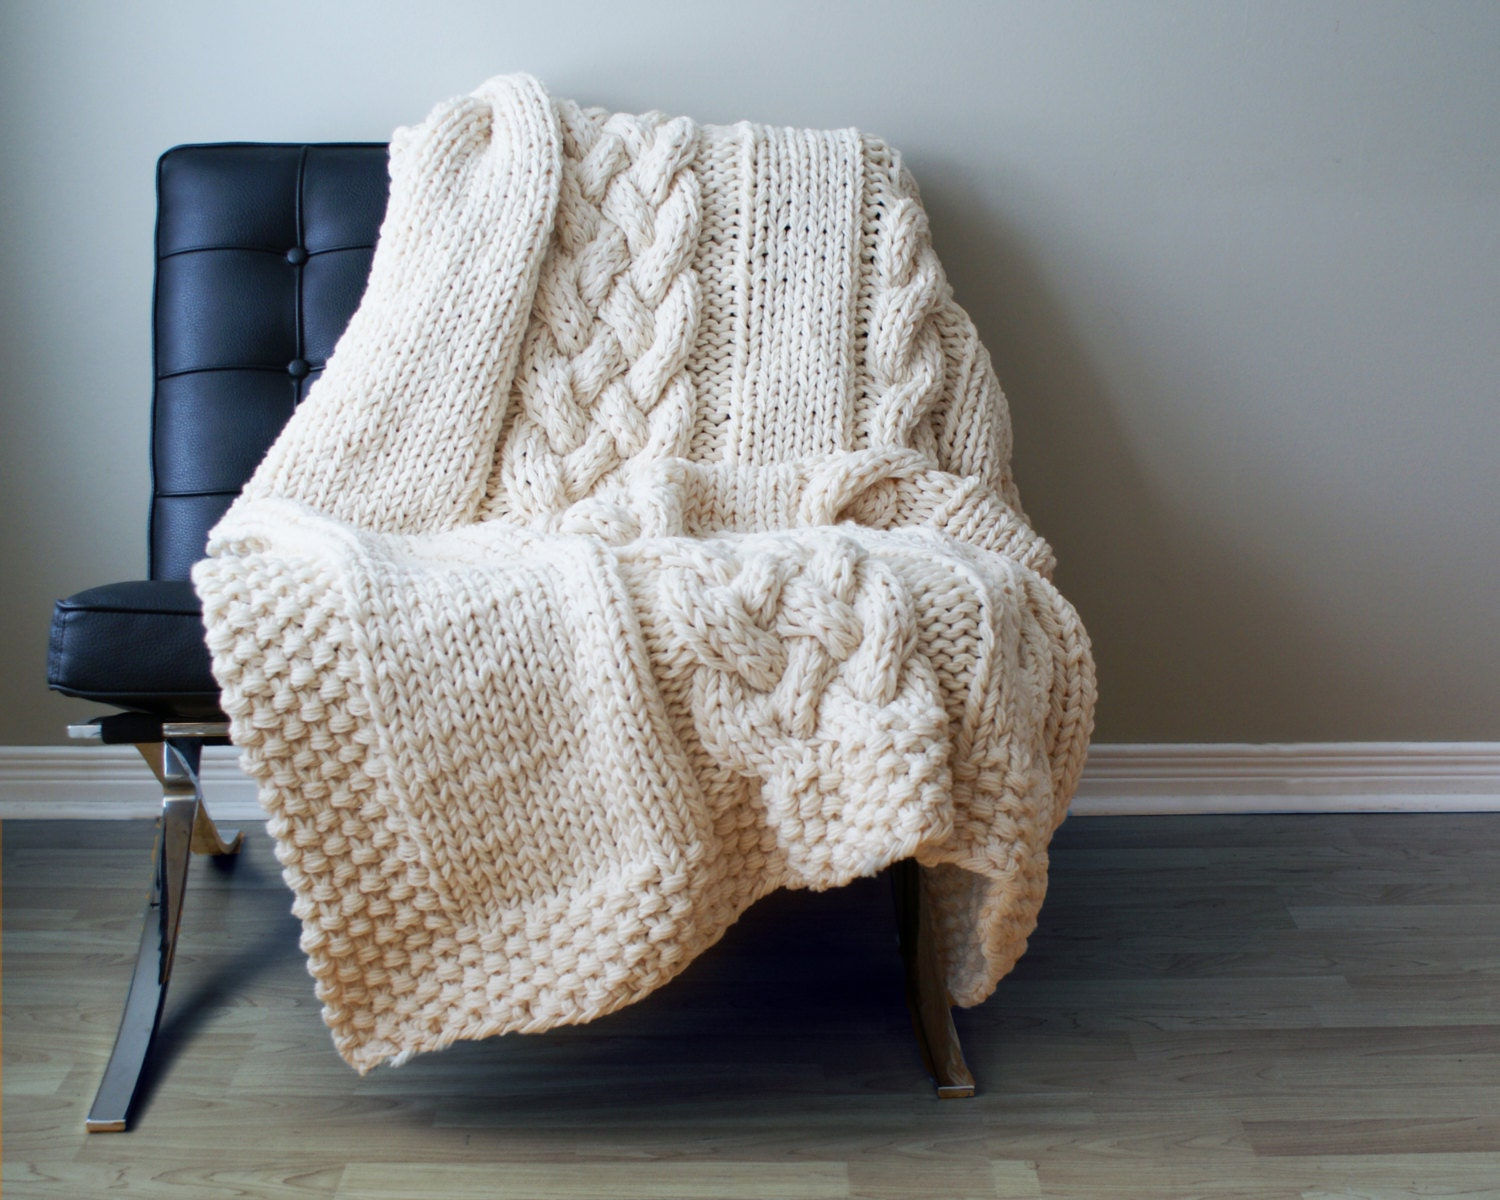 Claudette Chunky Knit Throw - Ivory. by Collective Sol. $ $ FREE AU SHIPPING. Frost Runner In Red Wine. by BEHR & CO. $ $ FREE AU SHIPPING. Oatmeal Cotton Throw. by Millie Archer. $ FREE AU SHIPPING. Melbourne Cotton Throw. by Millie Archer. $ FREE AU SHIPPING. Lourdes Throw in White & Black.